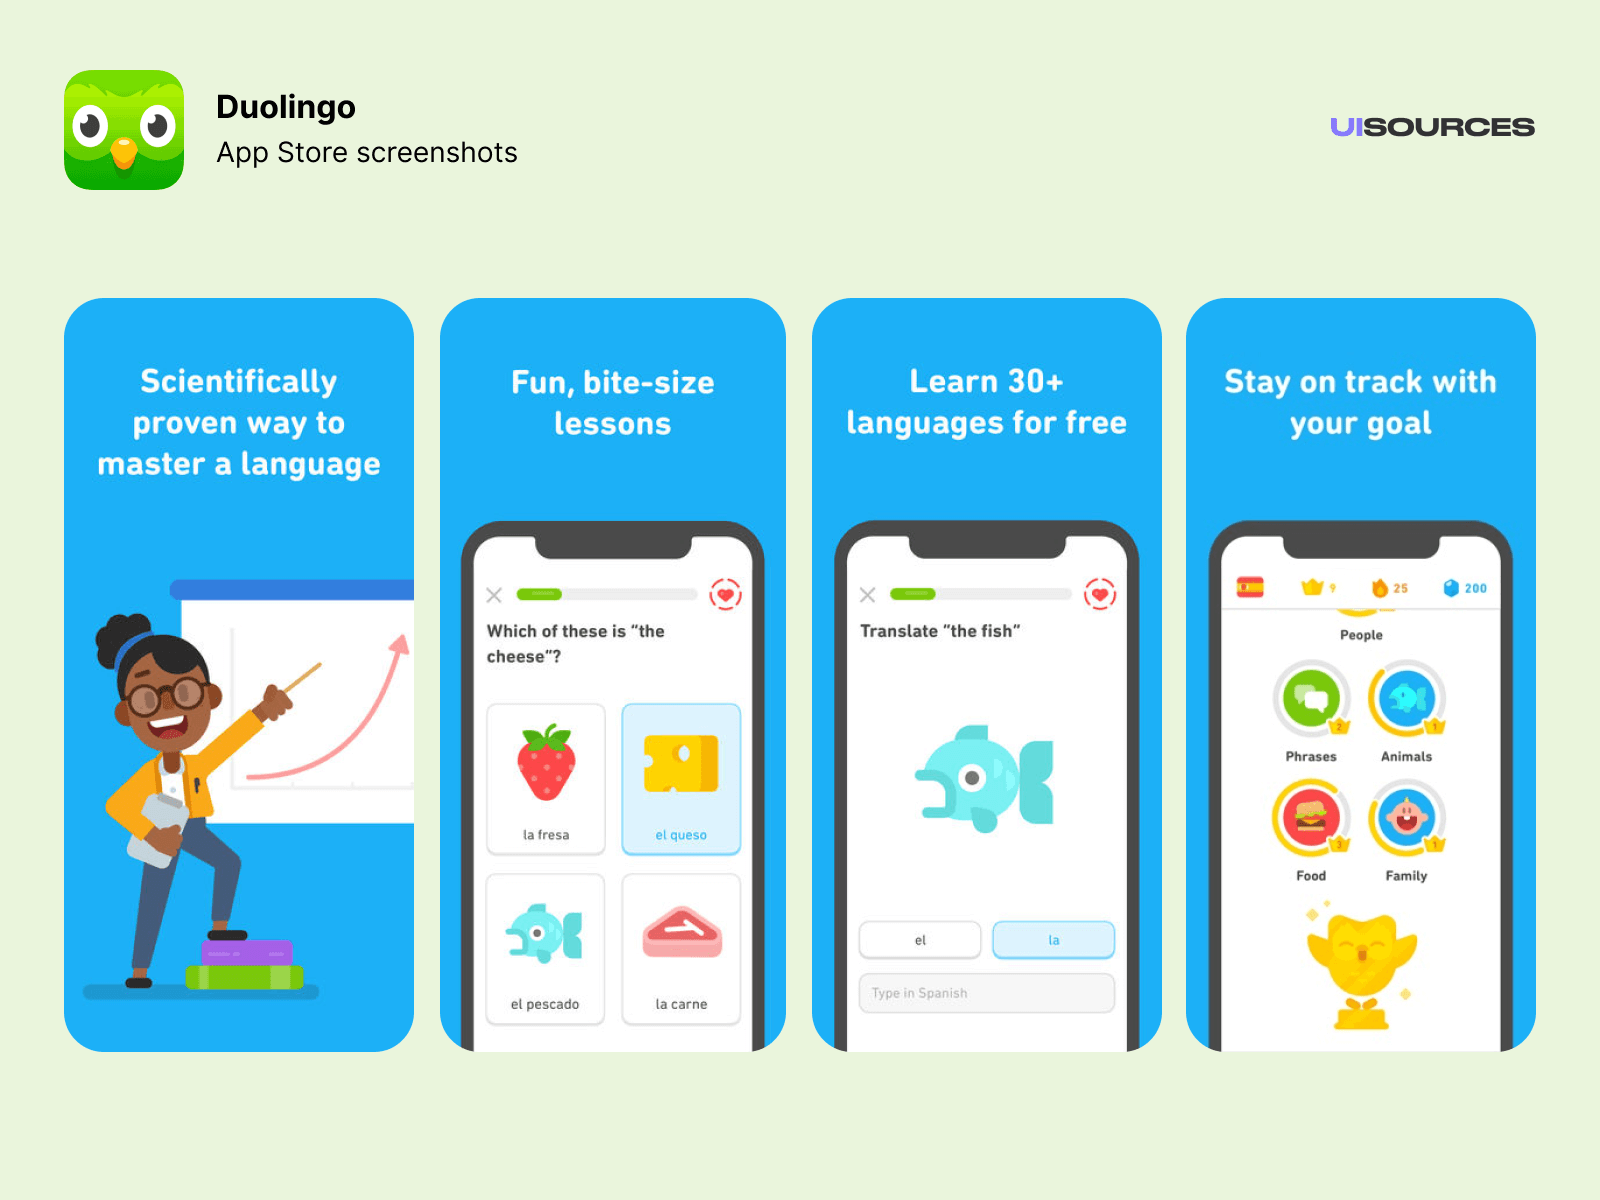 Duolingo - Learn Spanish, French and more | UI Sources